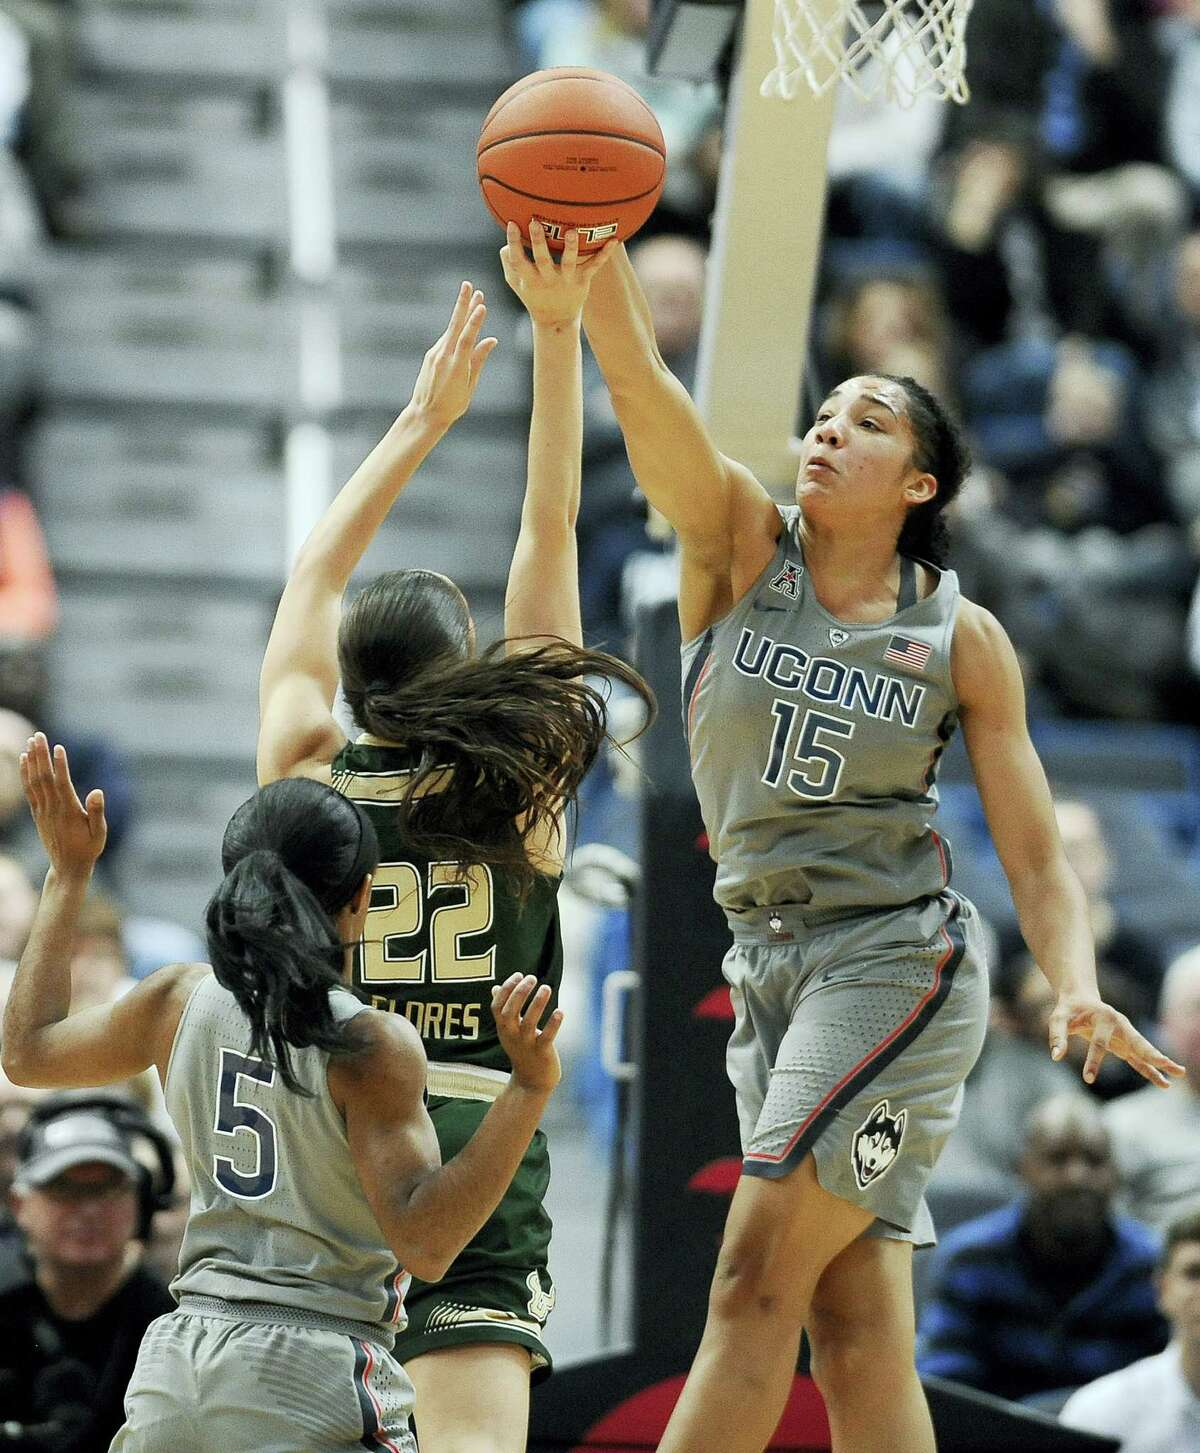 UConn's Gabby Williams blocks a shot attempt by South Florida's Laia Flores, center, as UConn's Crystal Dangerfield left, defends, in the first half of the Huskies' 90the consecutive victory.